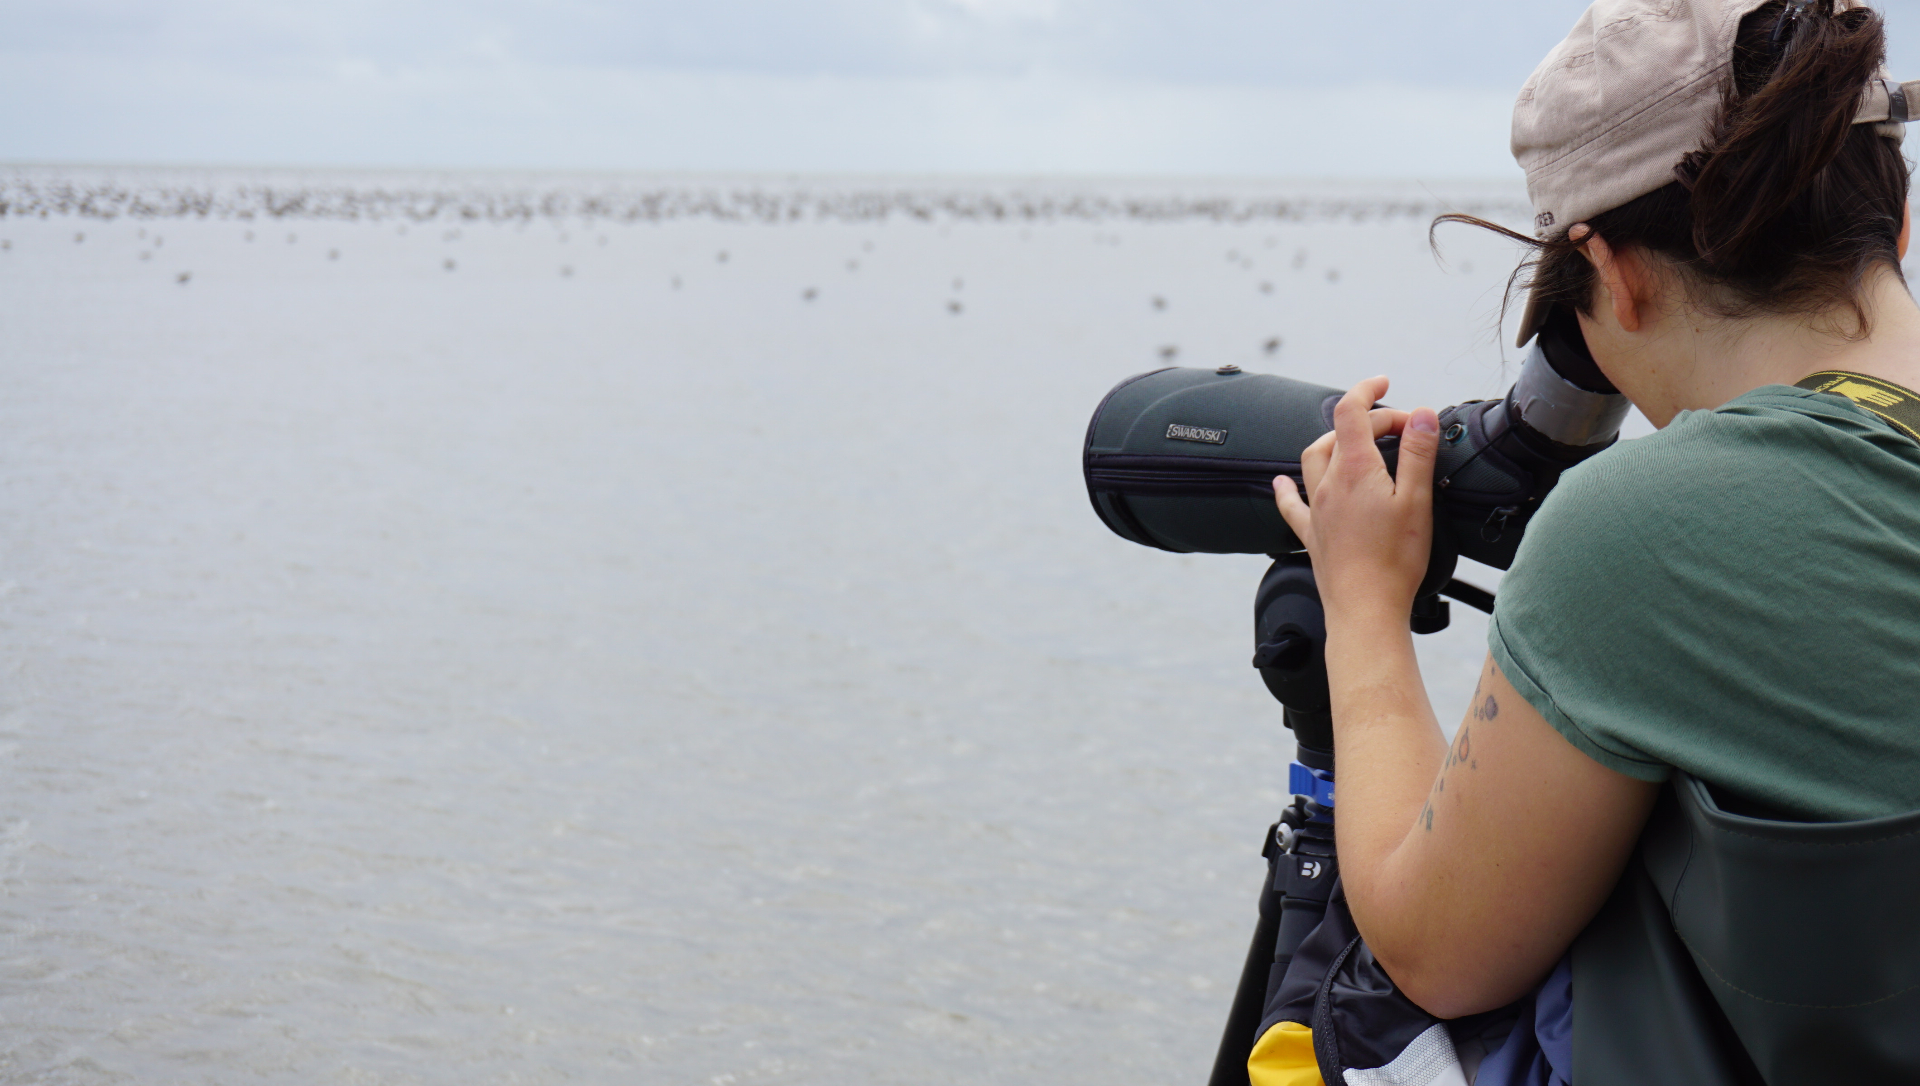 Selin Ersoy is watching red knots and trying to find one with a tag. Photo credit: Dieke de Boer